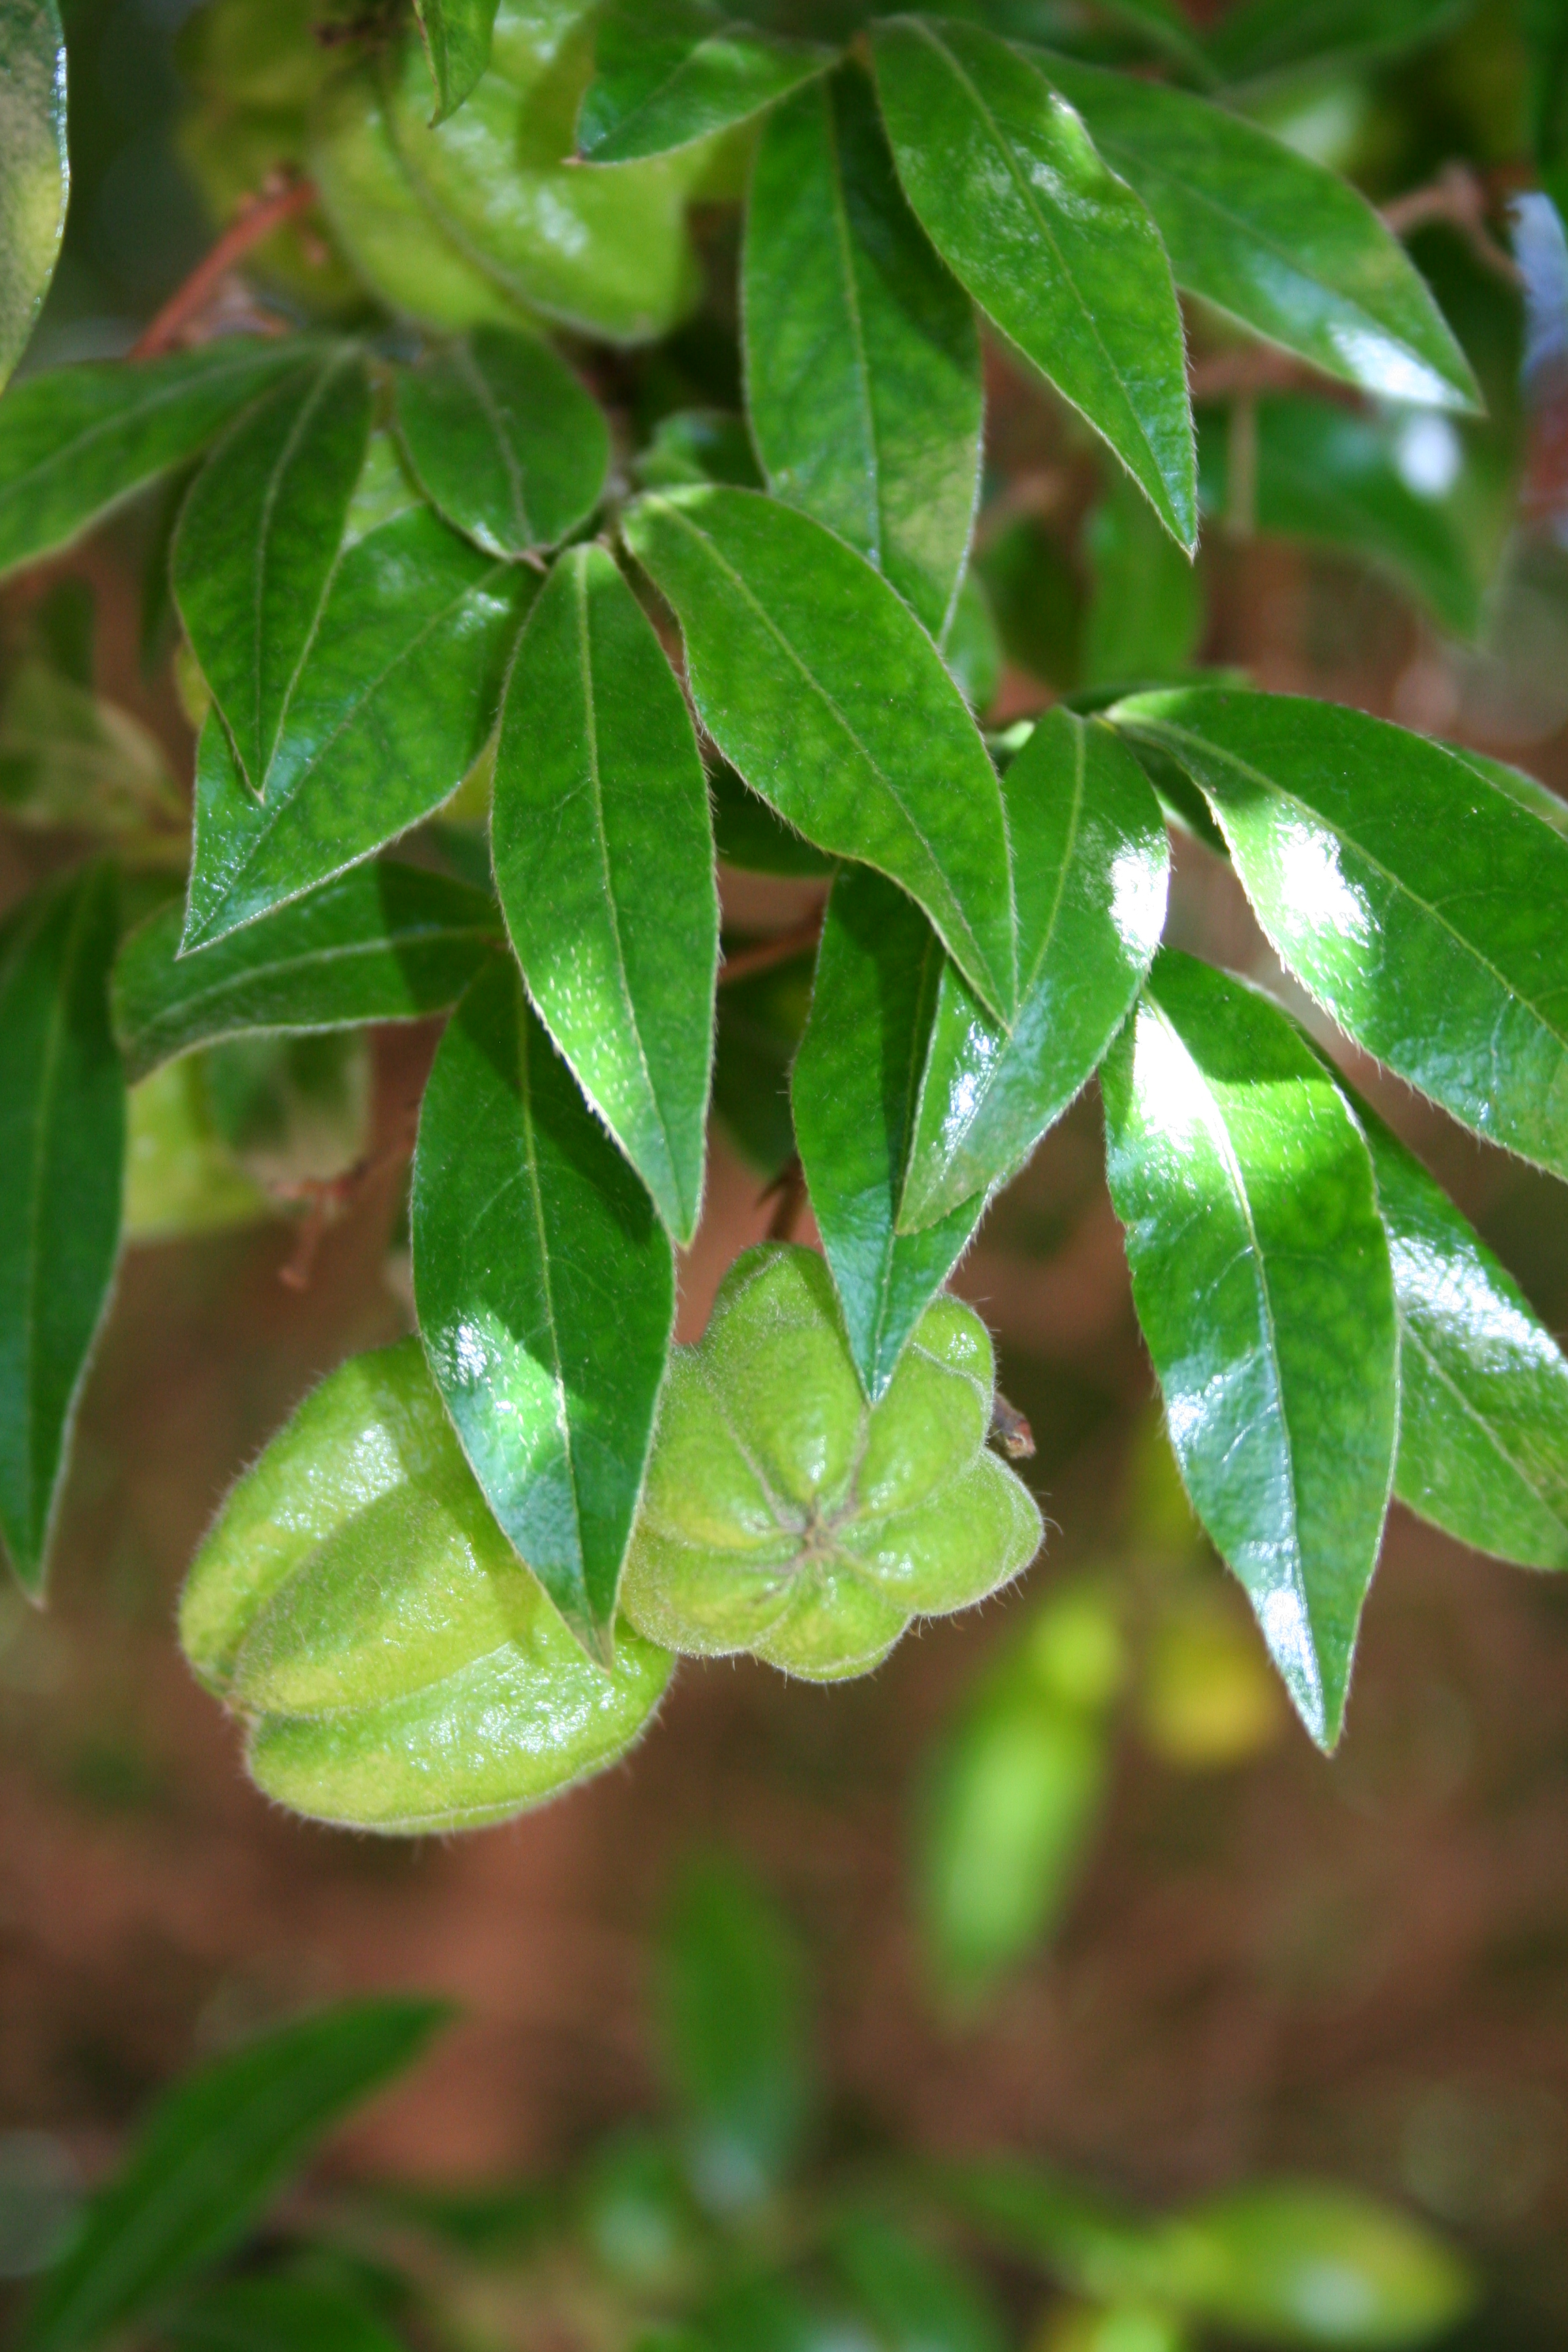 http://upload.wikimedia.org/wikipedia/commons/6/6d/Diospyros_whyteana_IMG_2651.JPG